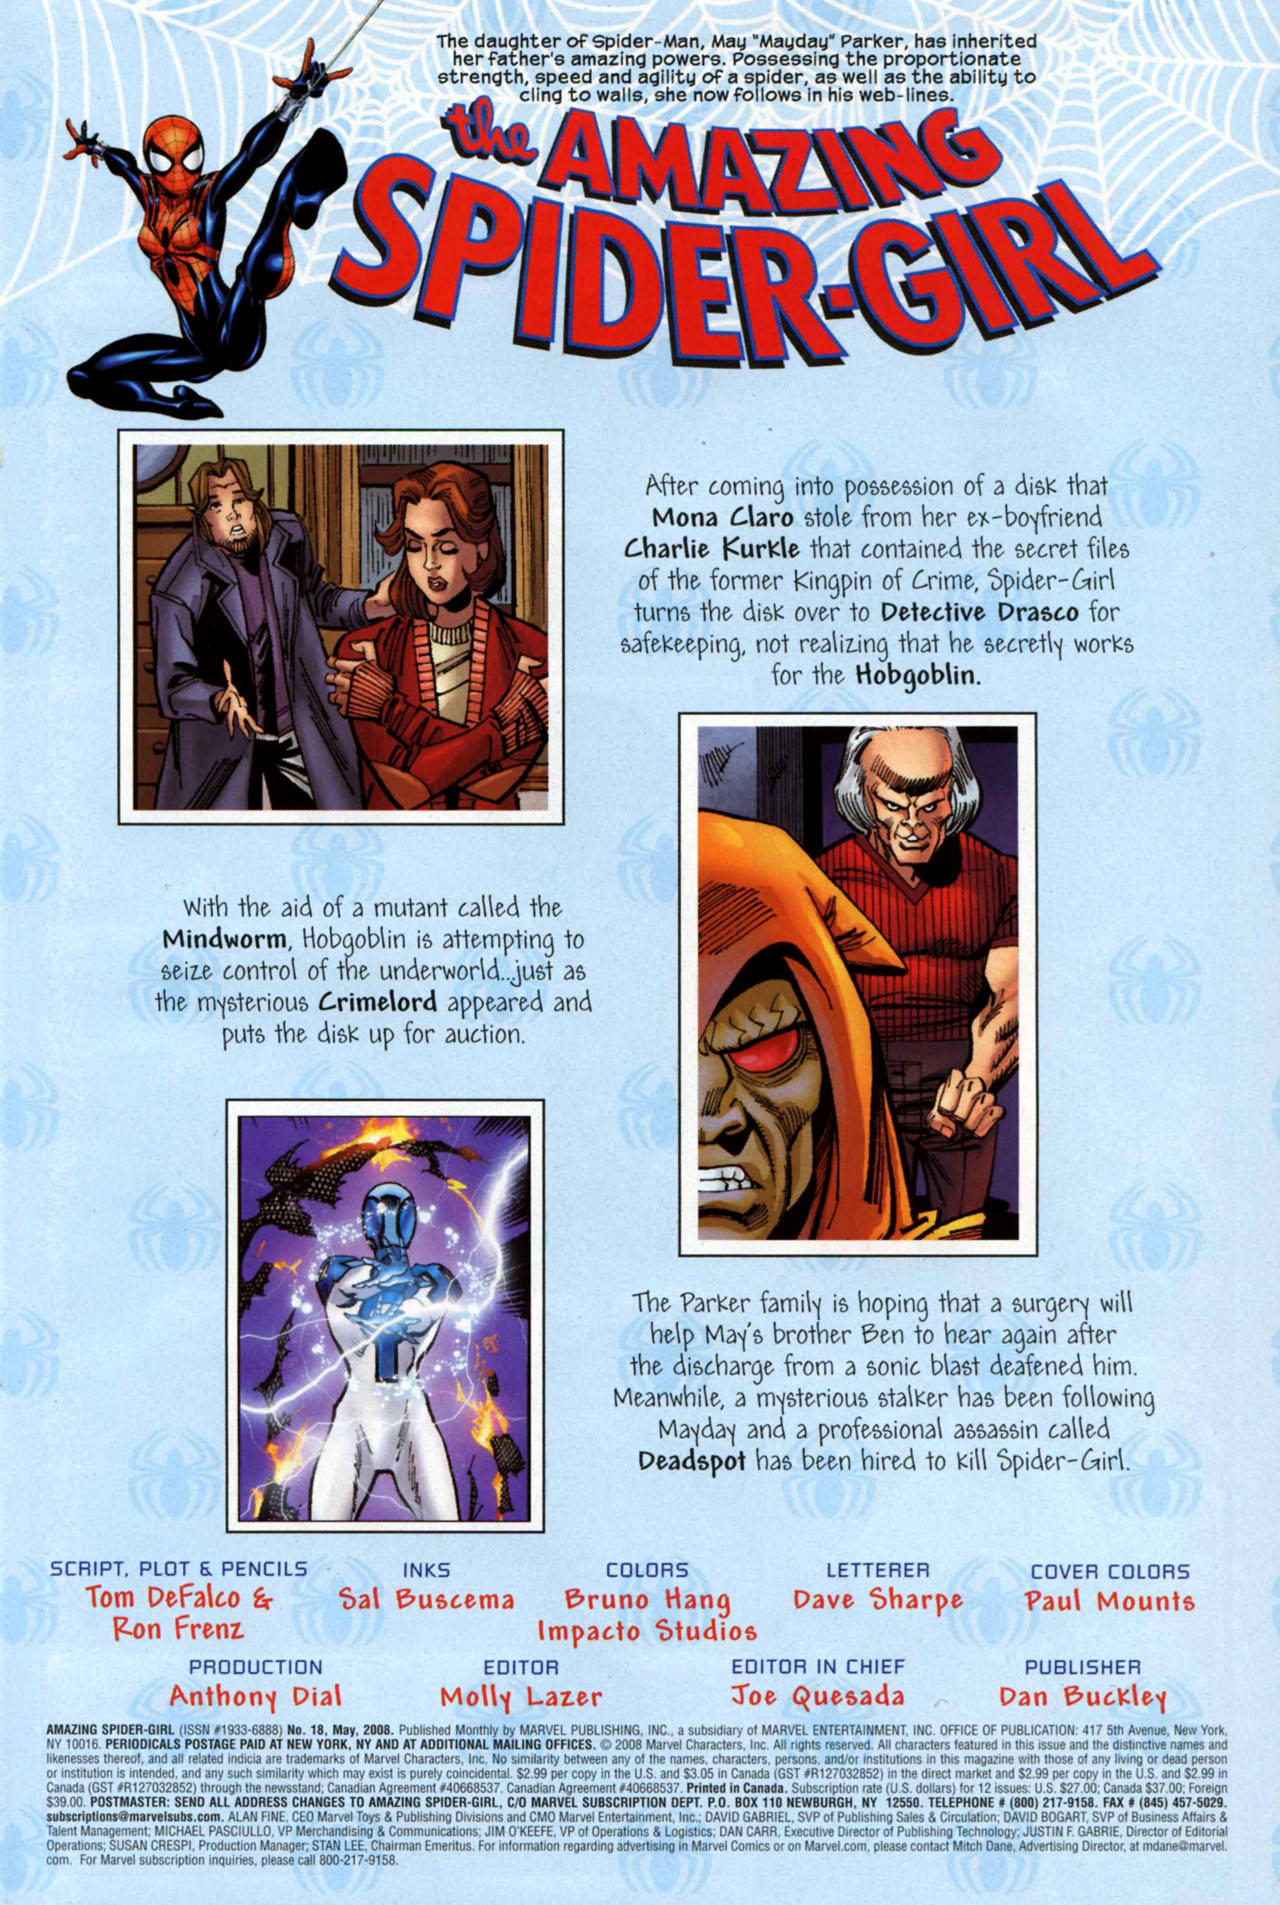 Read online Amazing Spider-Girl comic -  Issue #18 - 4